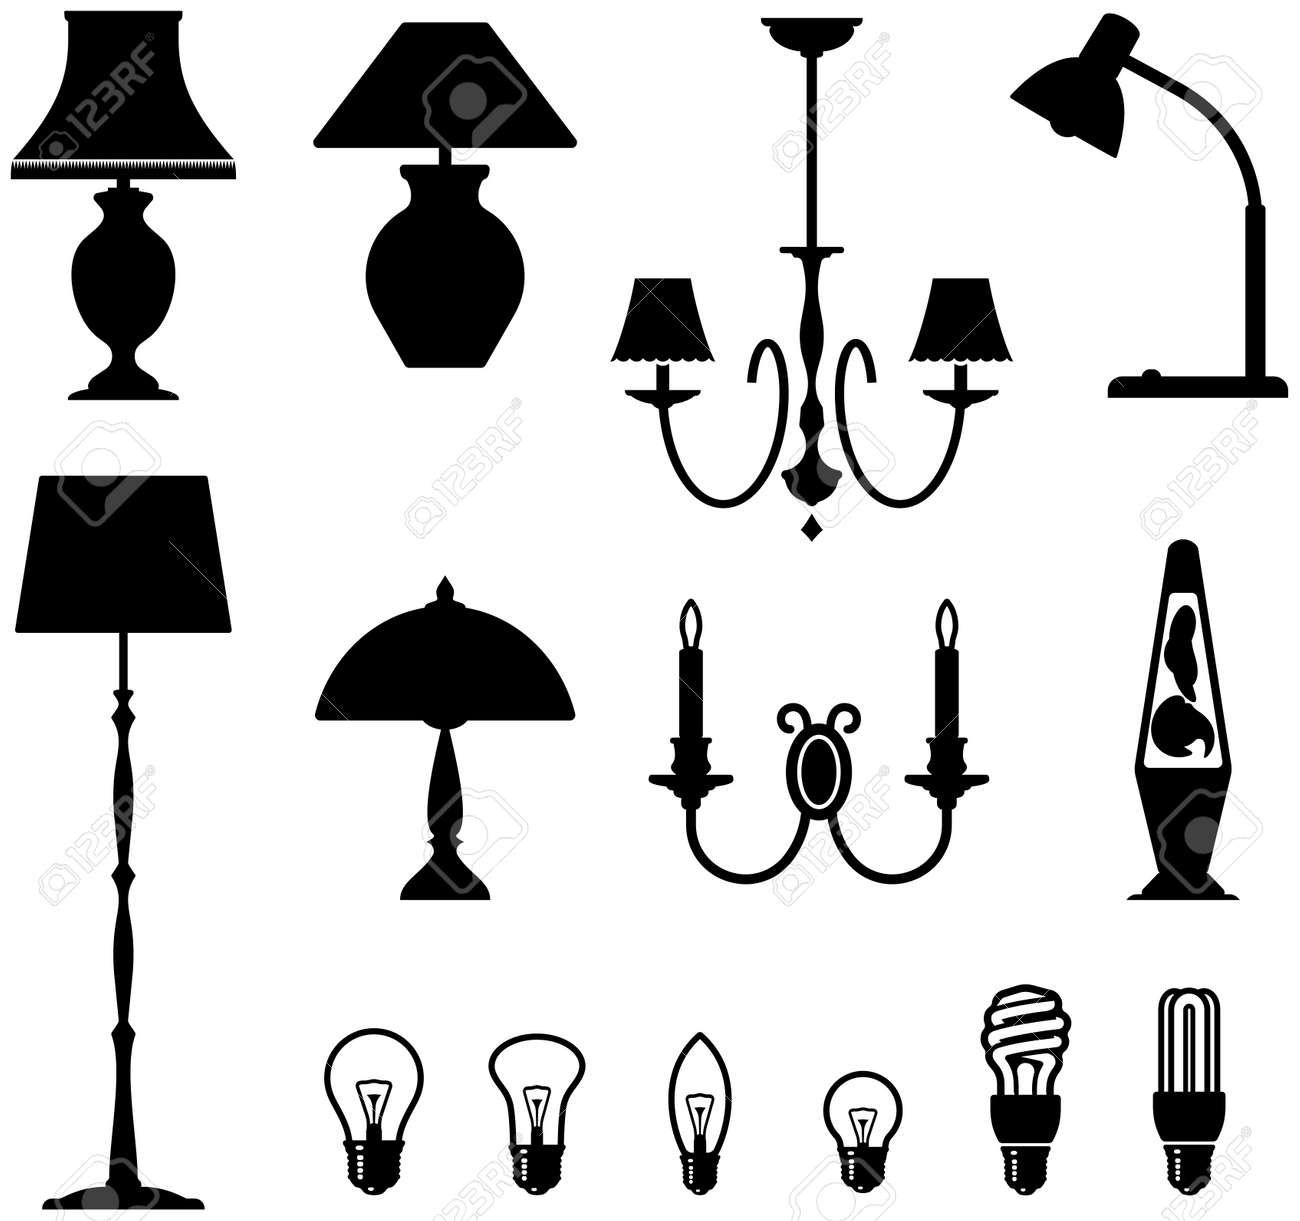 Lava lamp vector - Electric Lamps Chandeliers And Light Bulbs Stock Vector 5301321